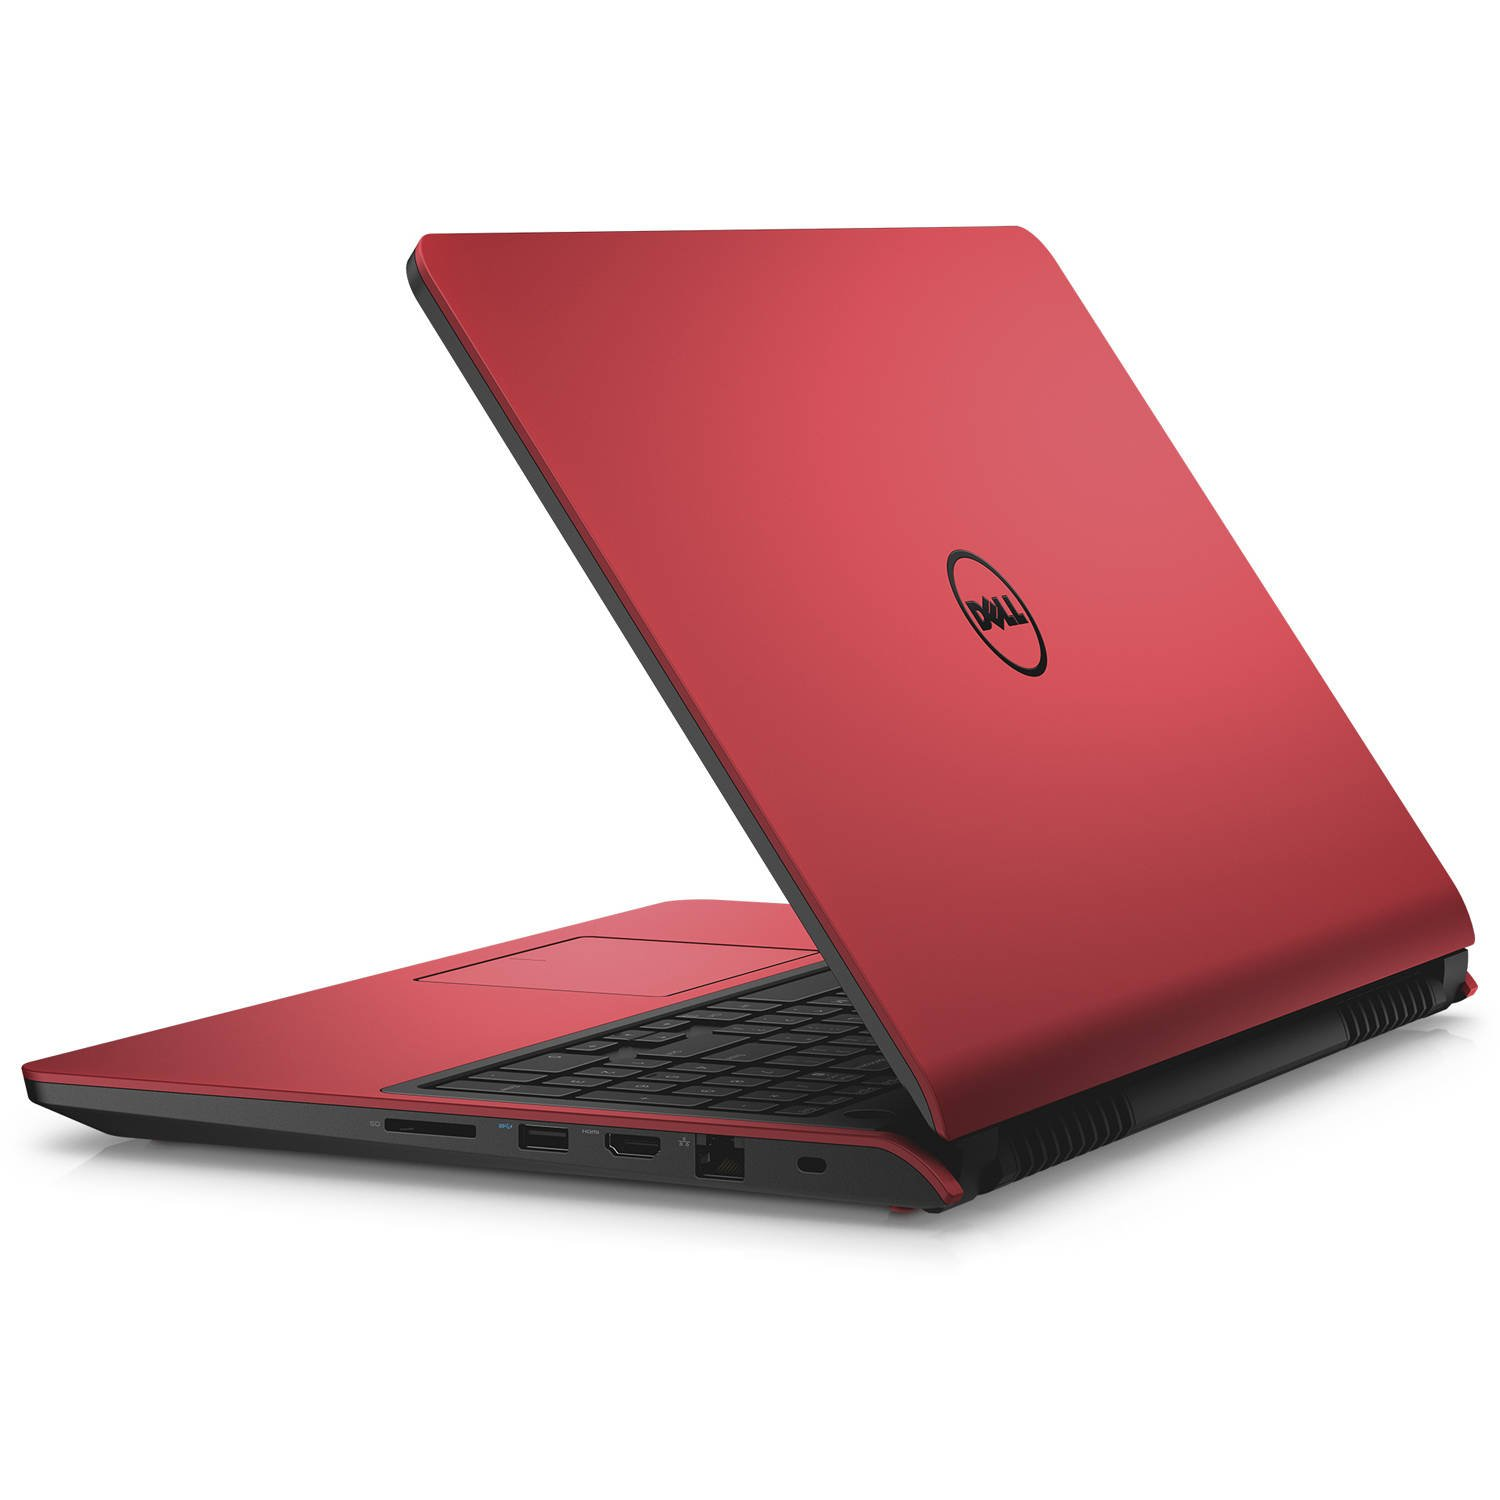 2017 Flagship Dell Inspiron 7000 15.6'' FHD Gaming Laptop - Intel Quad-Core i7-6700HQ 2.6GHz, 16GB RAM, 1TB HDD+8GB SSD, NVIDIA GeForce GTX 960M 4GB, Backlit Keyboard, MaxxAudio, HDMI, WLAN, Win 10